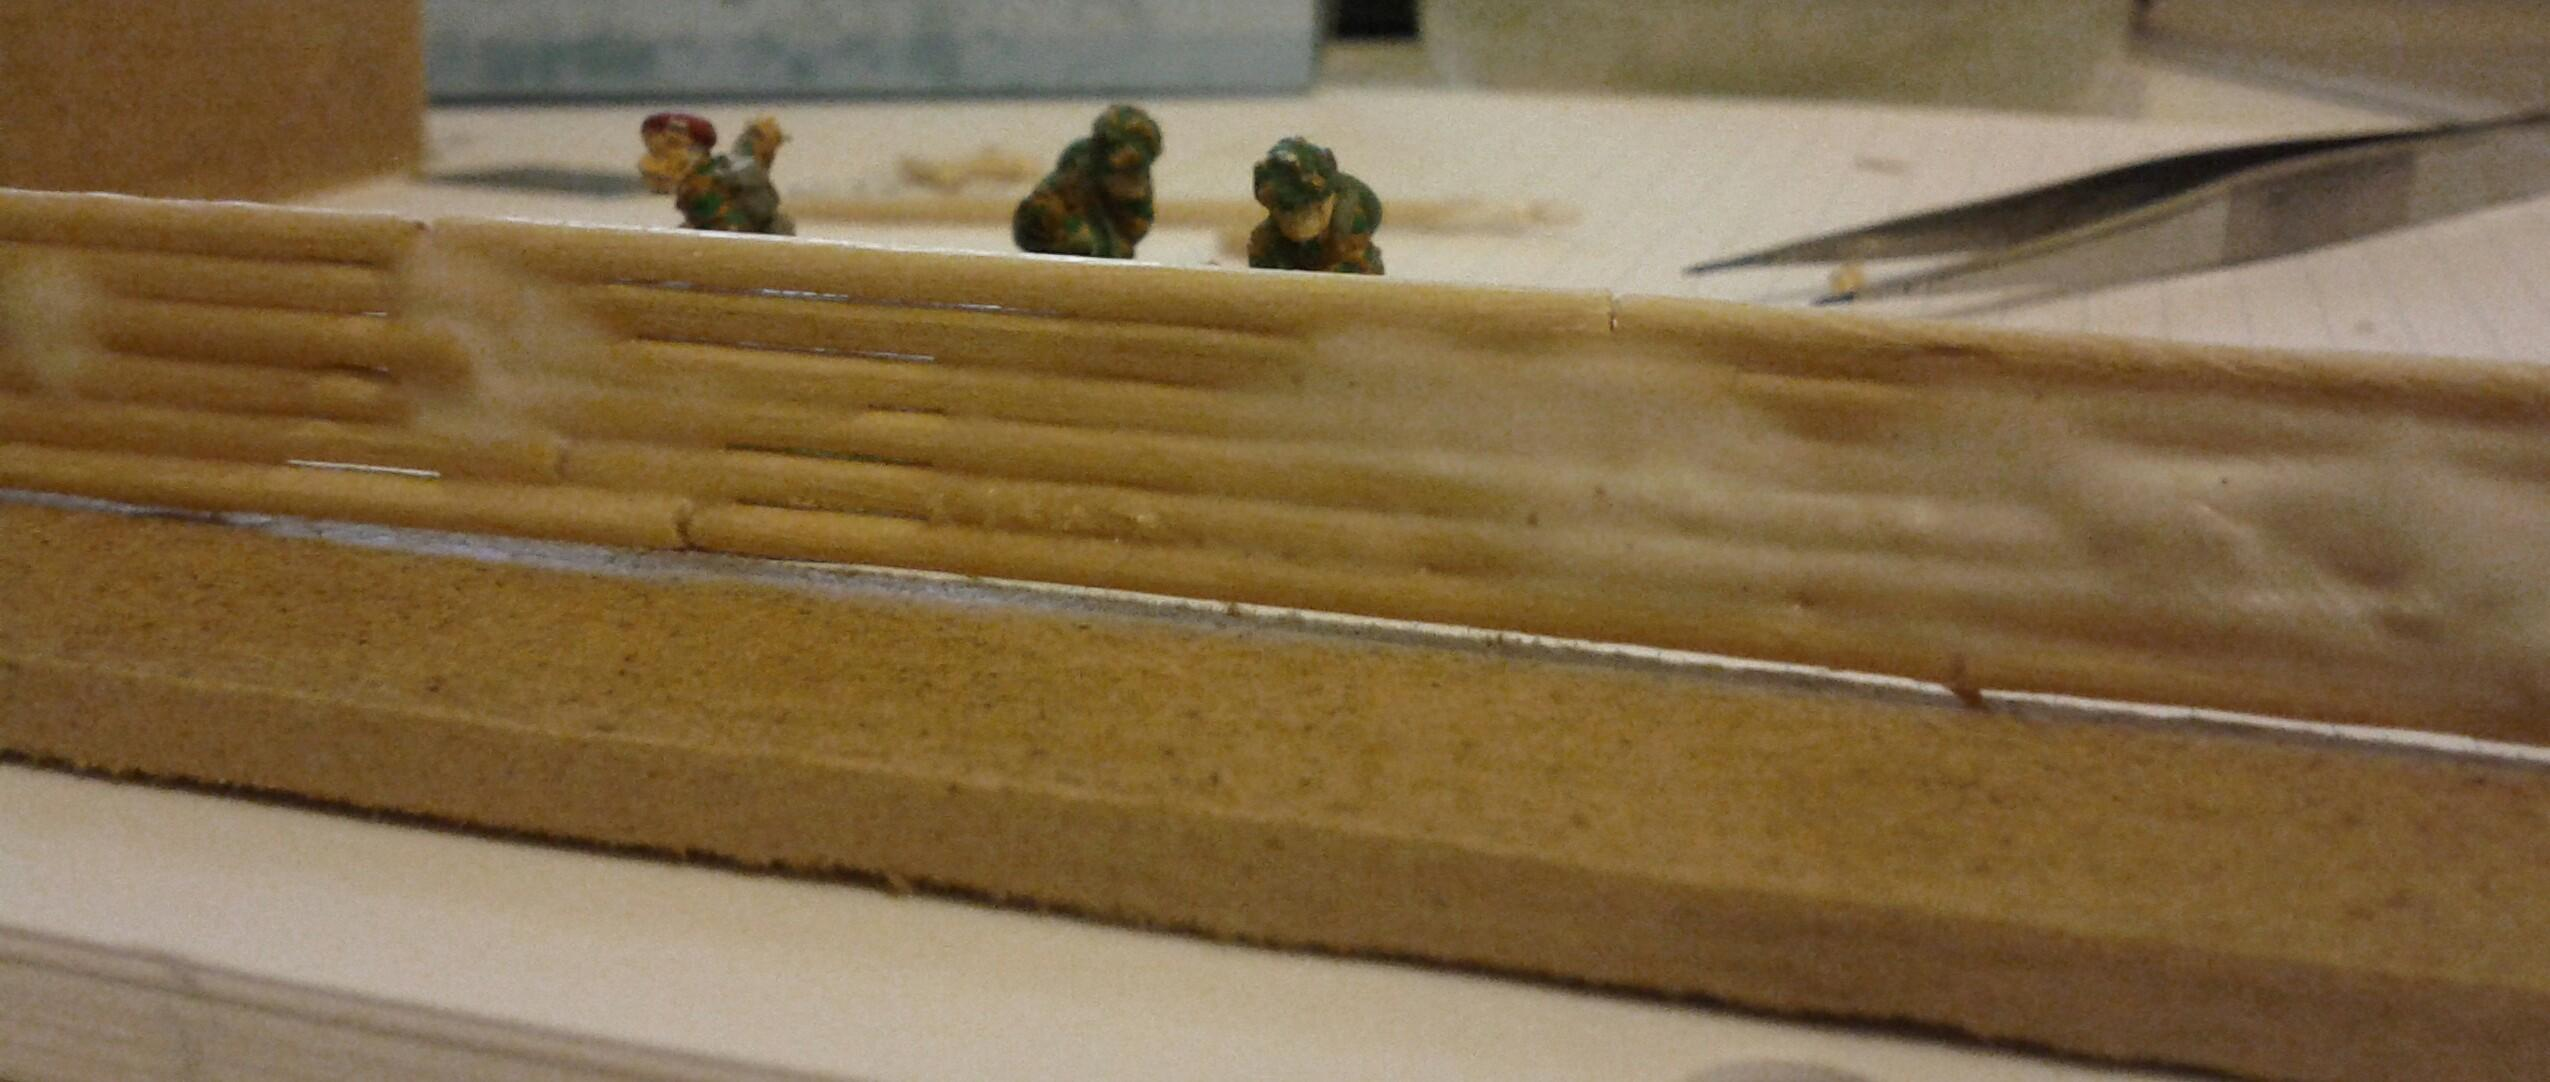 15mm, Bunker, Finns, Flames Of War, Trench, Trenches